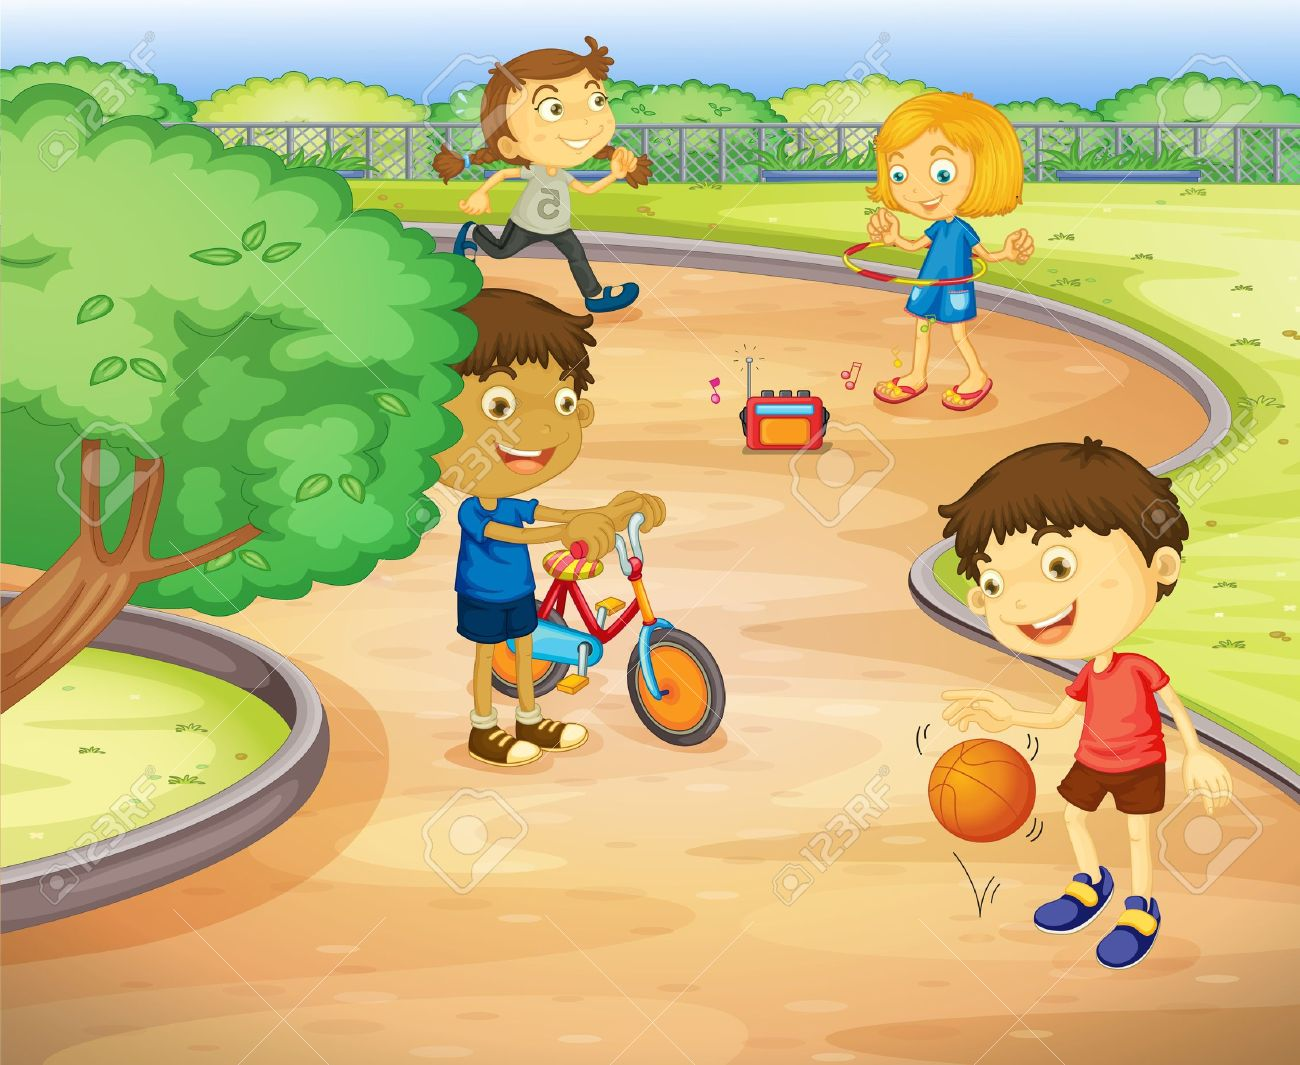 No Playing Ball In House Clipart.